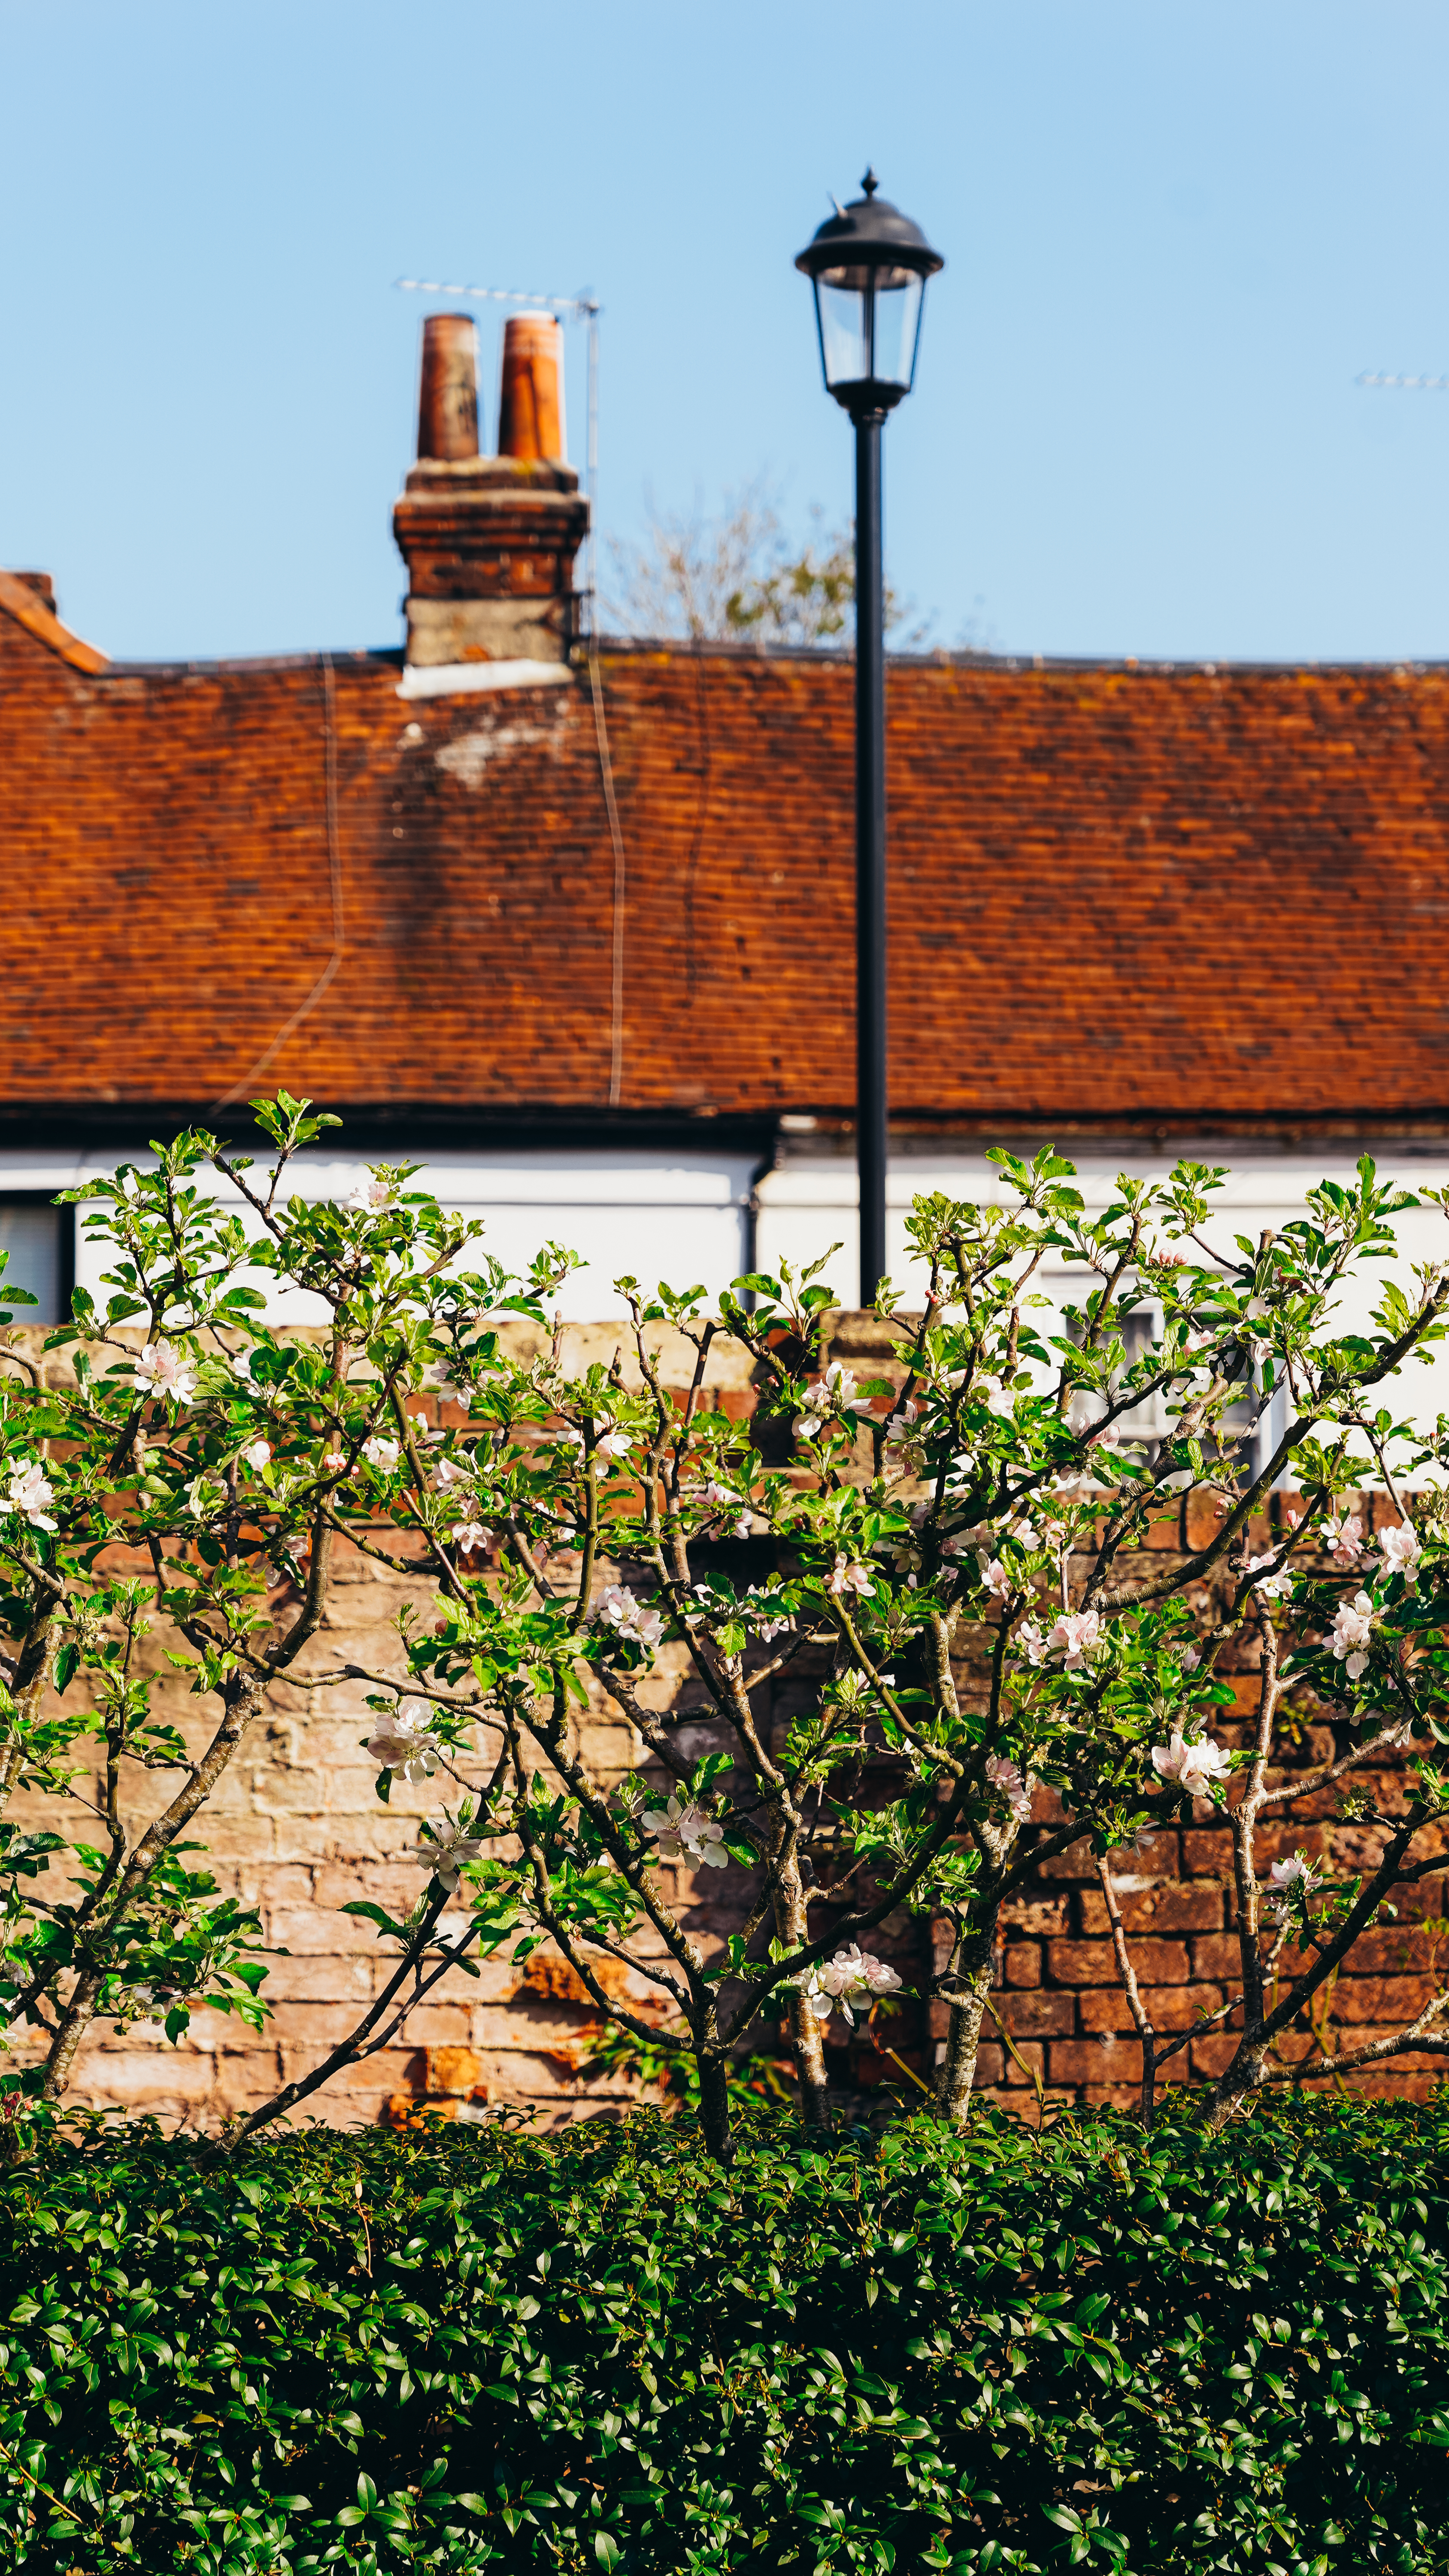 Lamppost and apple trees